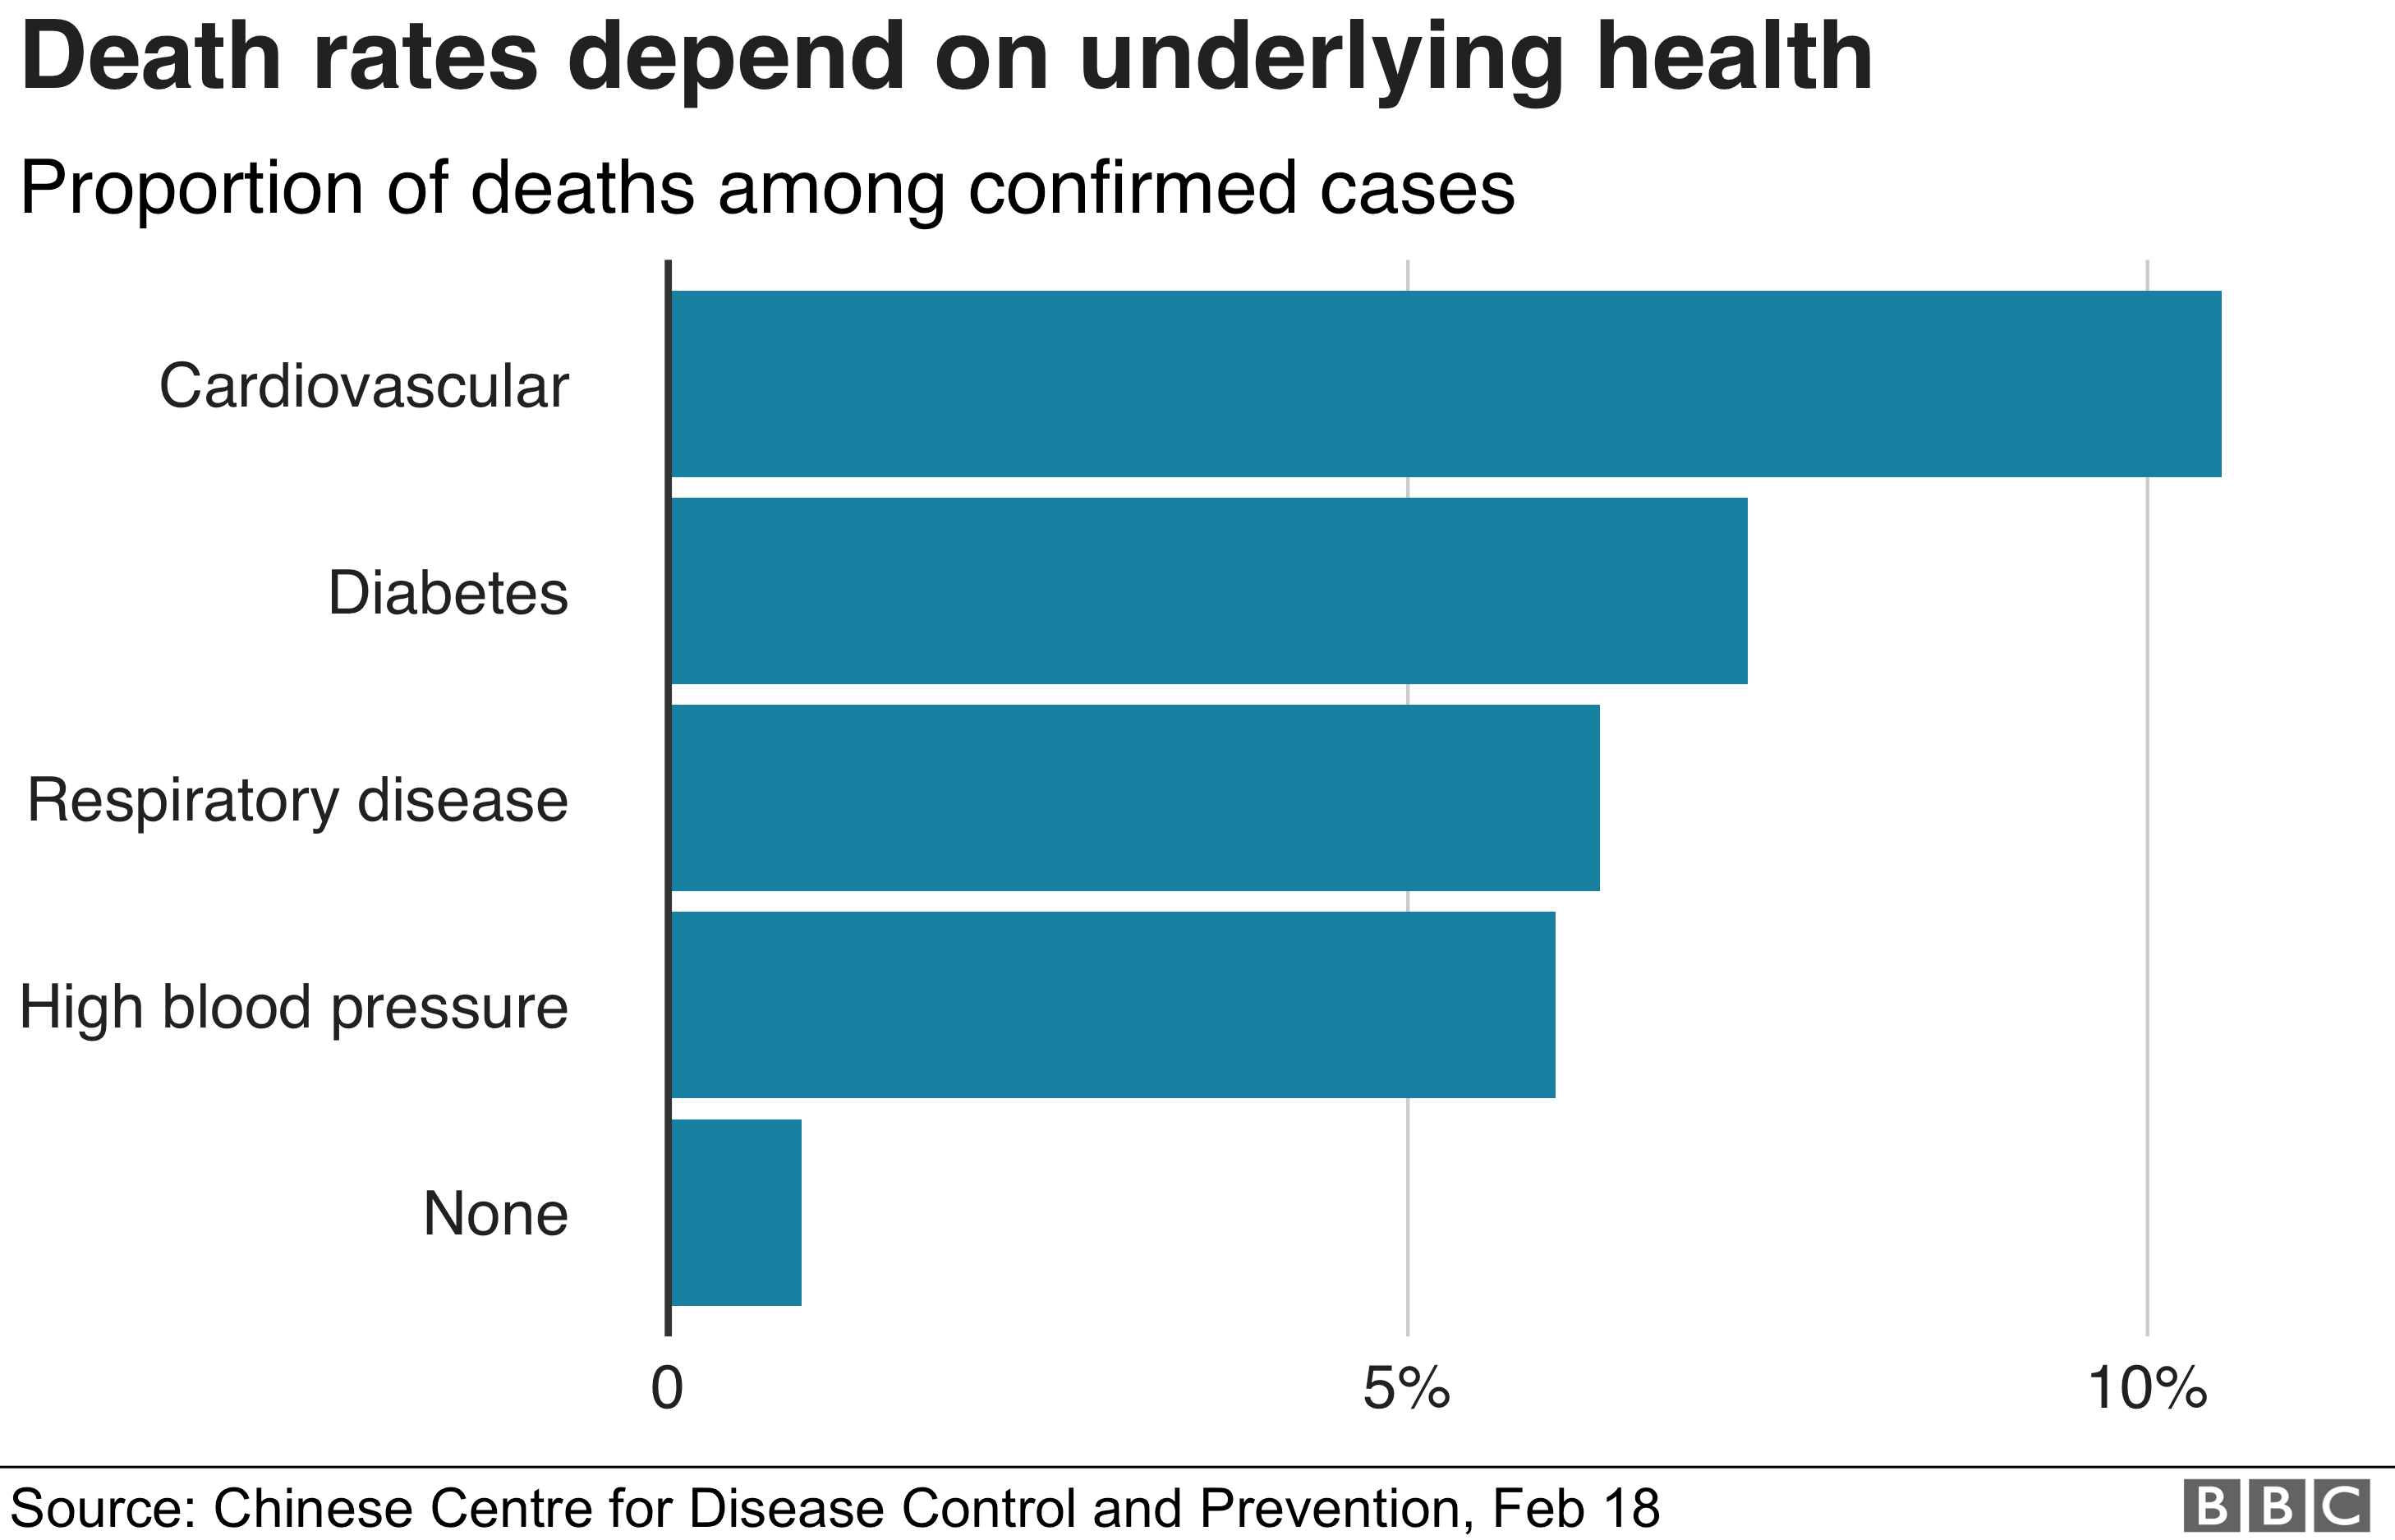 Death rates among people with different underlying health conditions